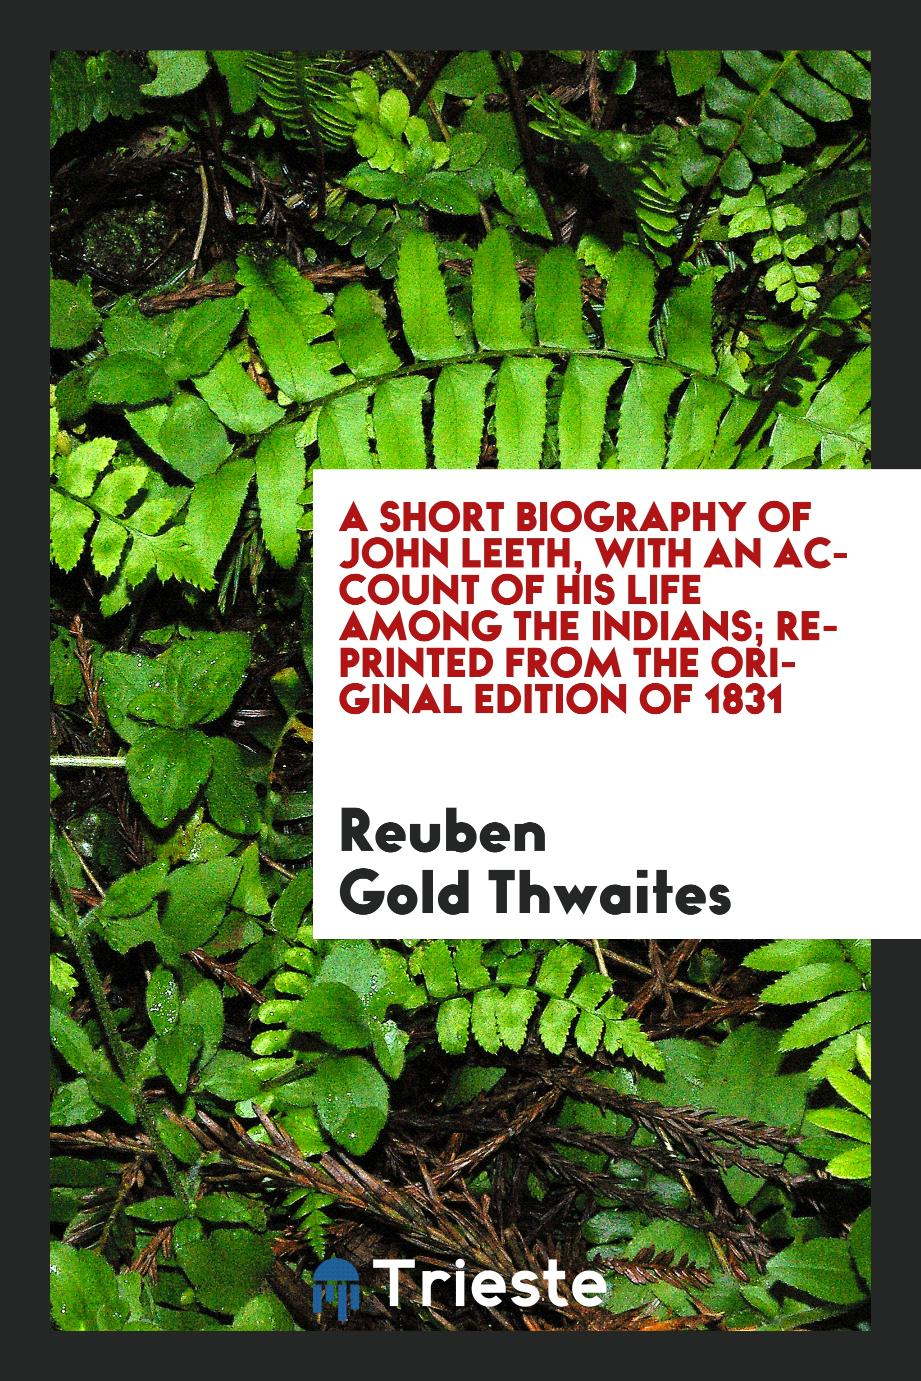 A short biography of John Leeth, with an account of his life among the Indians; reprinted from the original edition of 1831